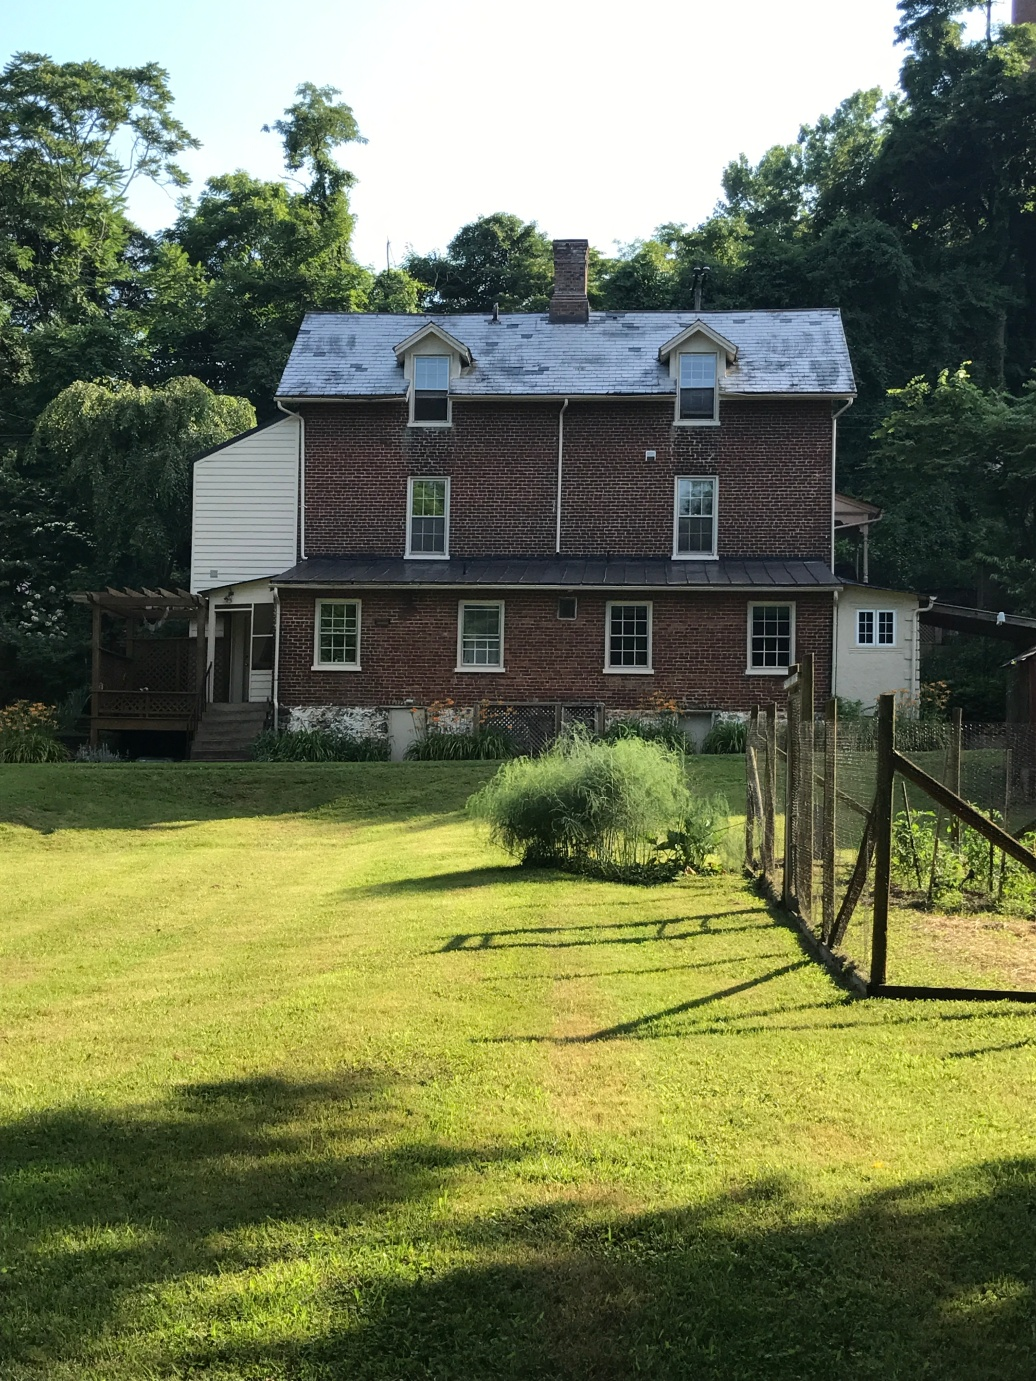 Our studio apartment was on the bottom right-hand side on the back of a home built in the 1830s.